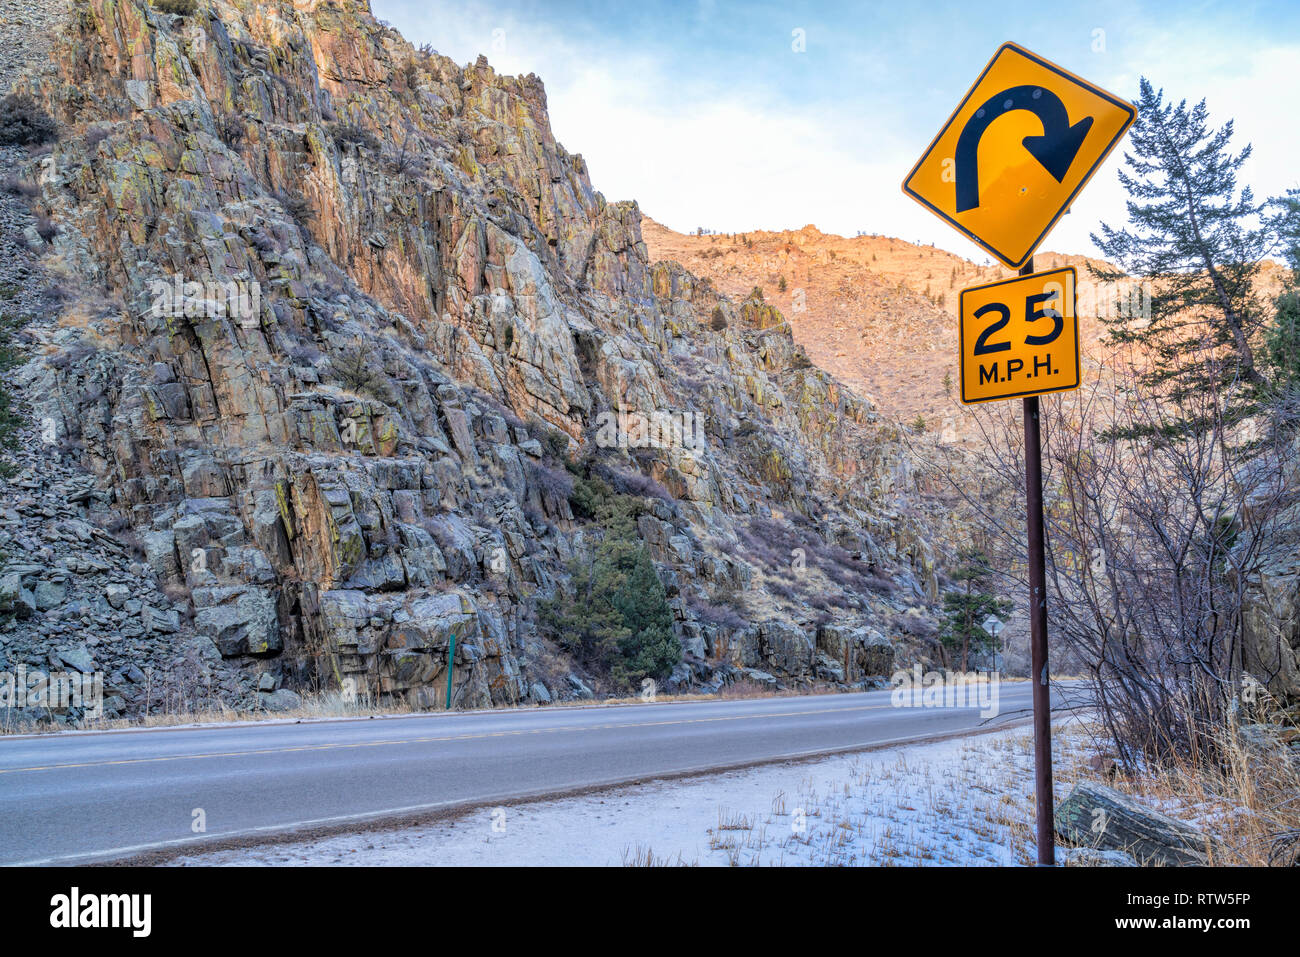 mountain highway with sharp turnings - Poudre River canyon in Rocky Mountains in northern Colorado, winter scenery - Stock Image